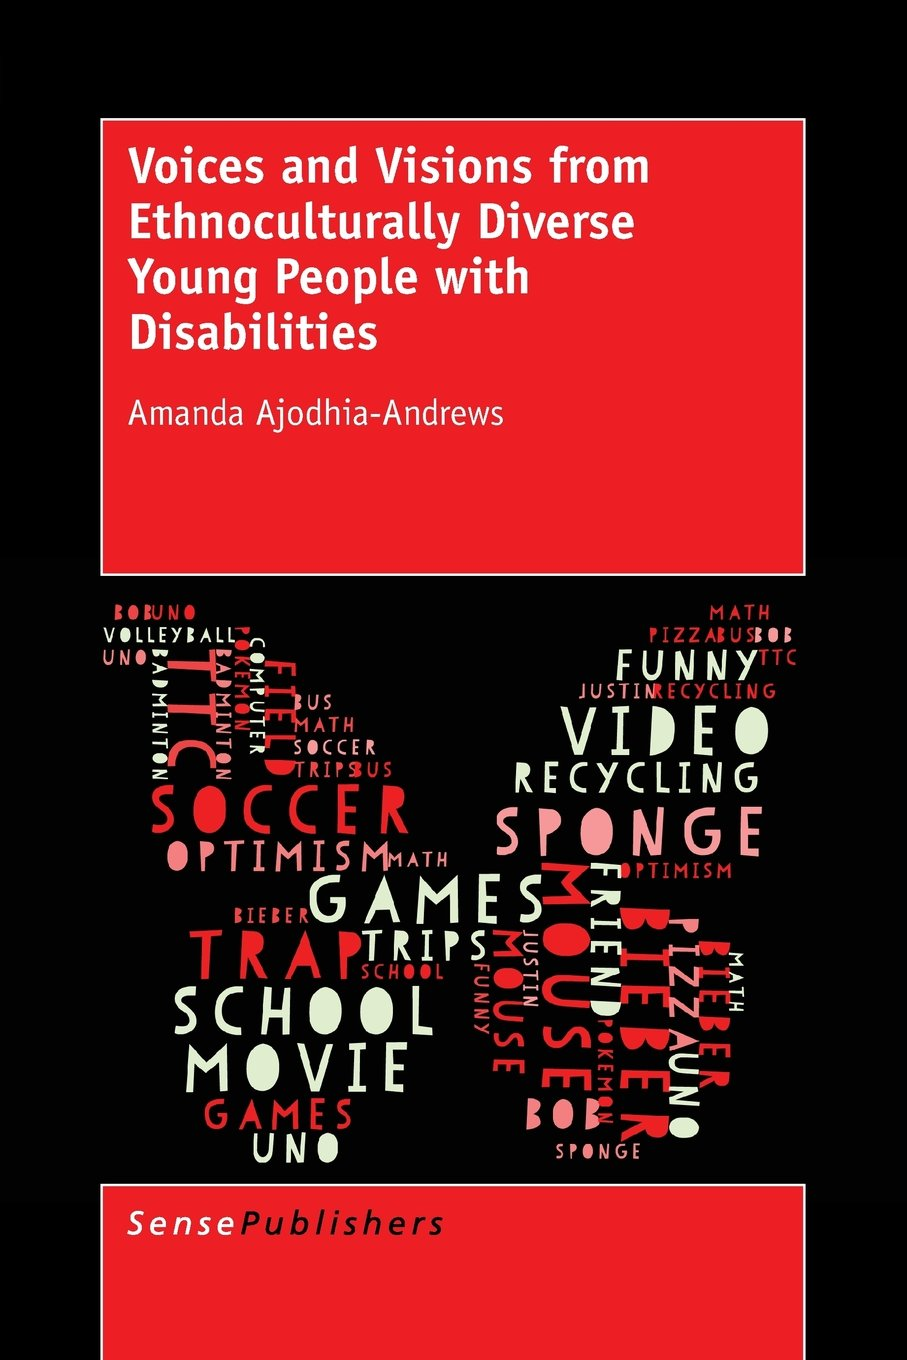 Voices and Visions from Ethnoculturally Diverse Young People with Disabilities